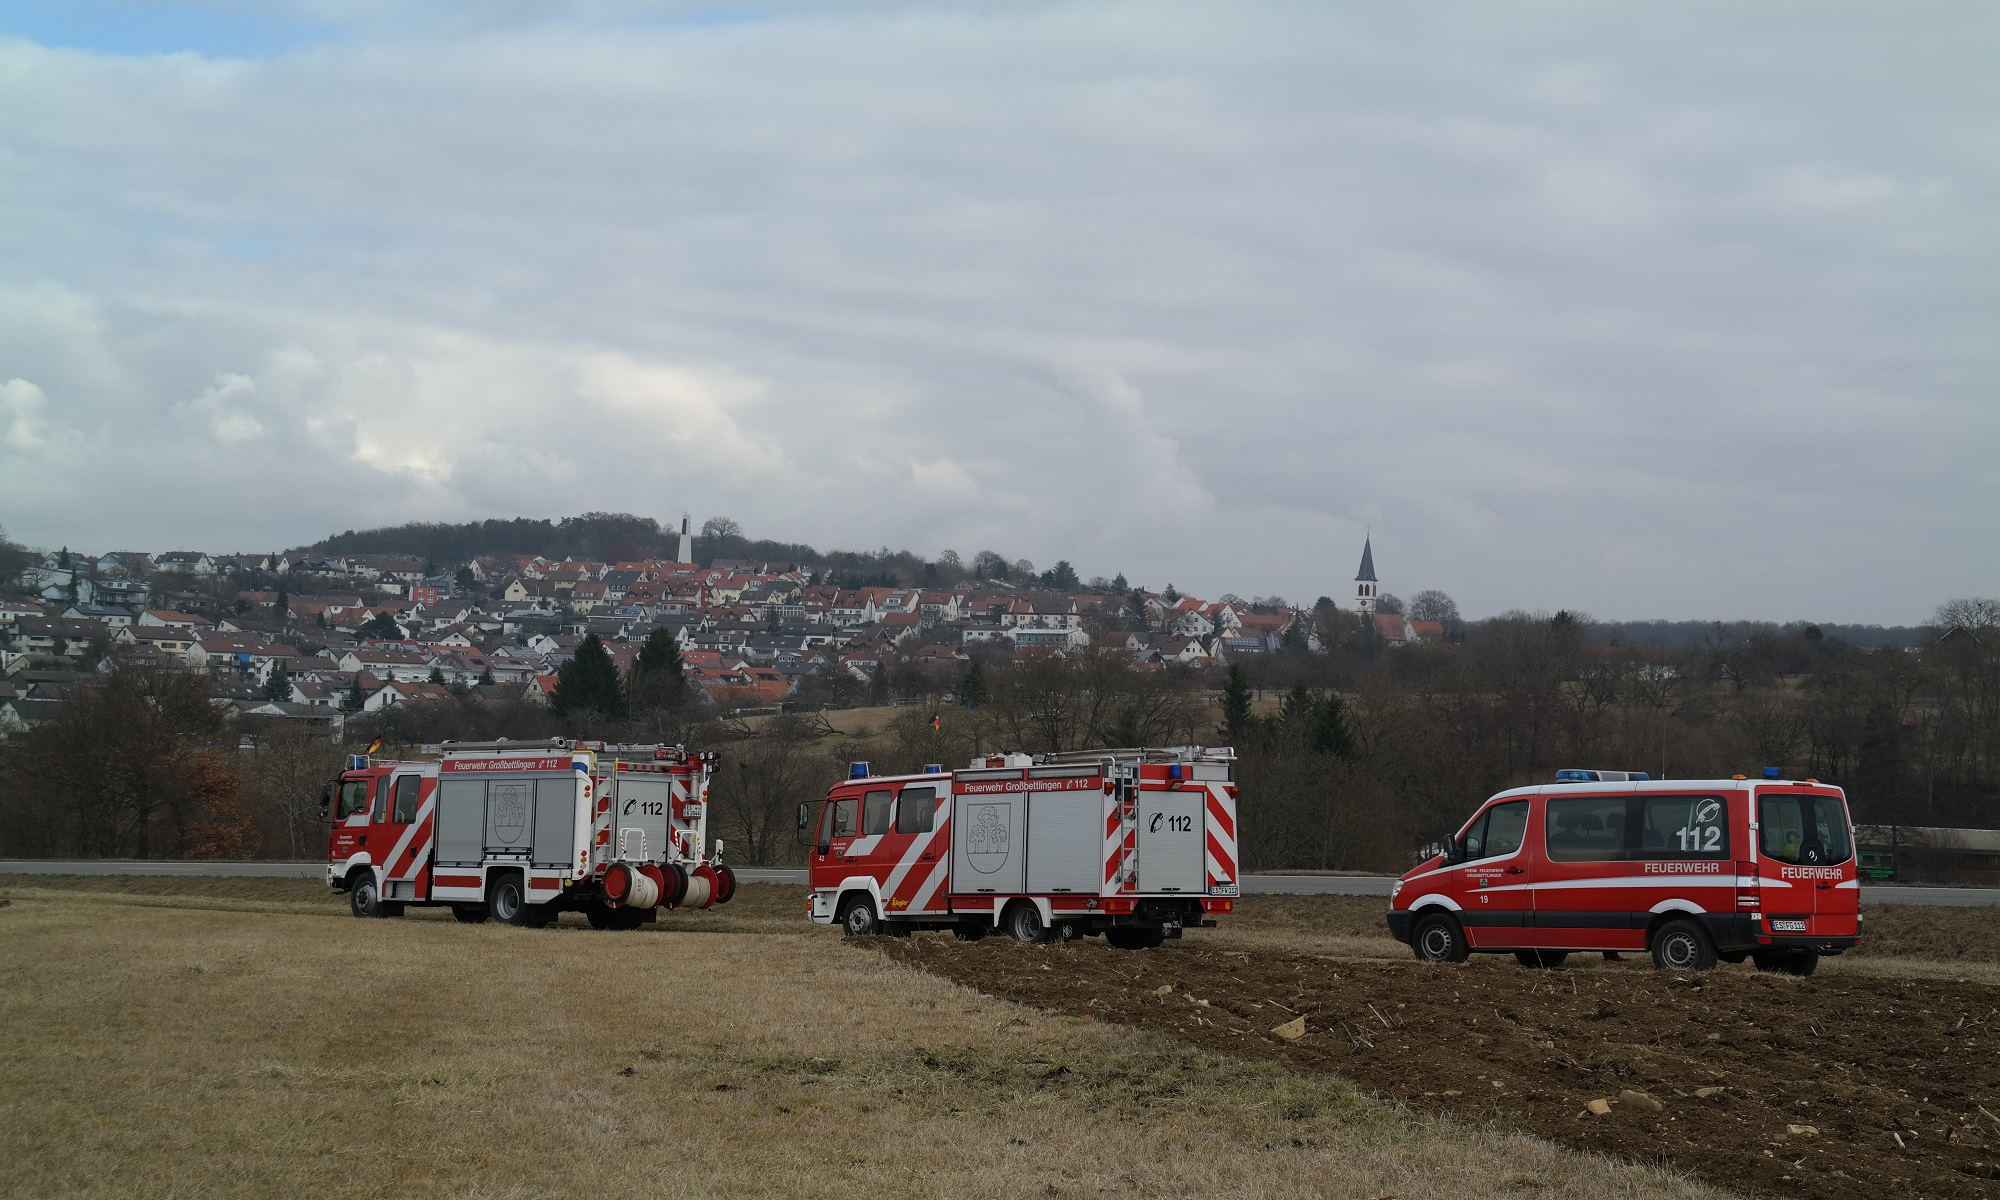 Feuerwehr Großbettlingen